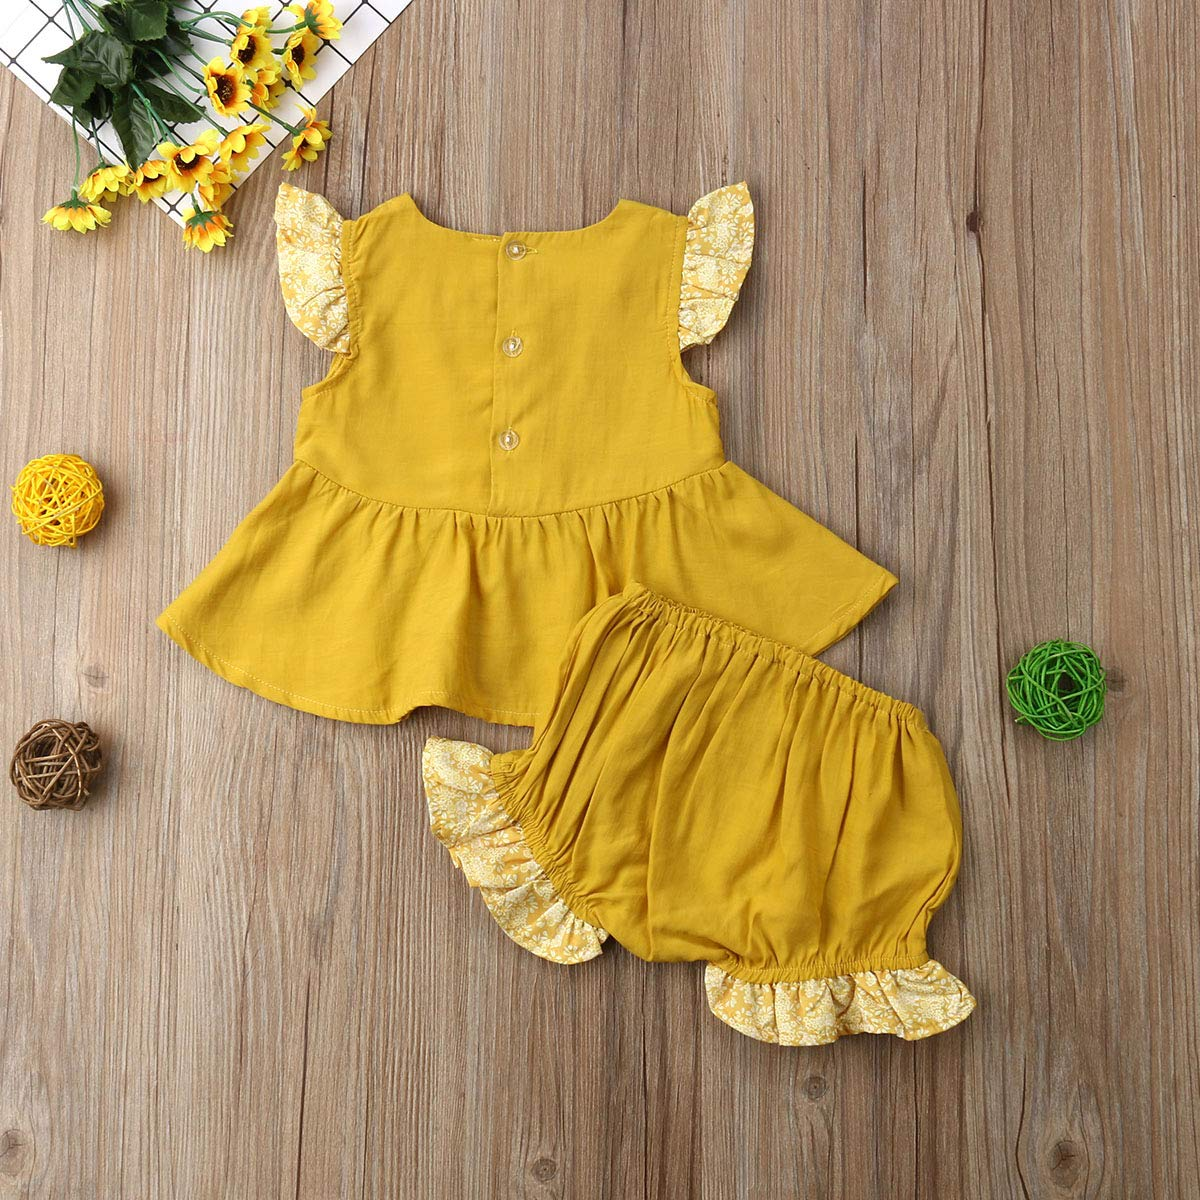 Infant Baby Girls Ruffle Tunic T Shirts Dress Tops Shorts Set Outfits Clothes